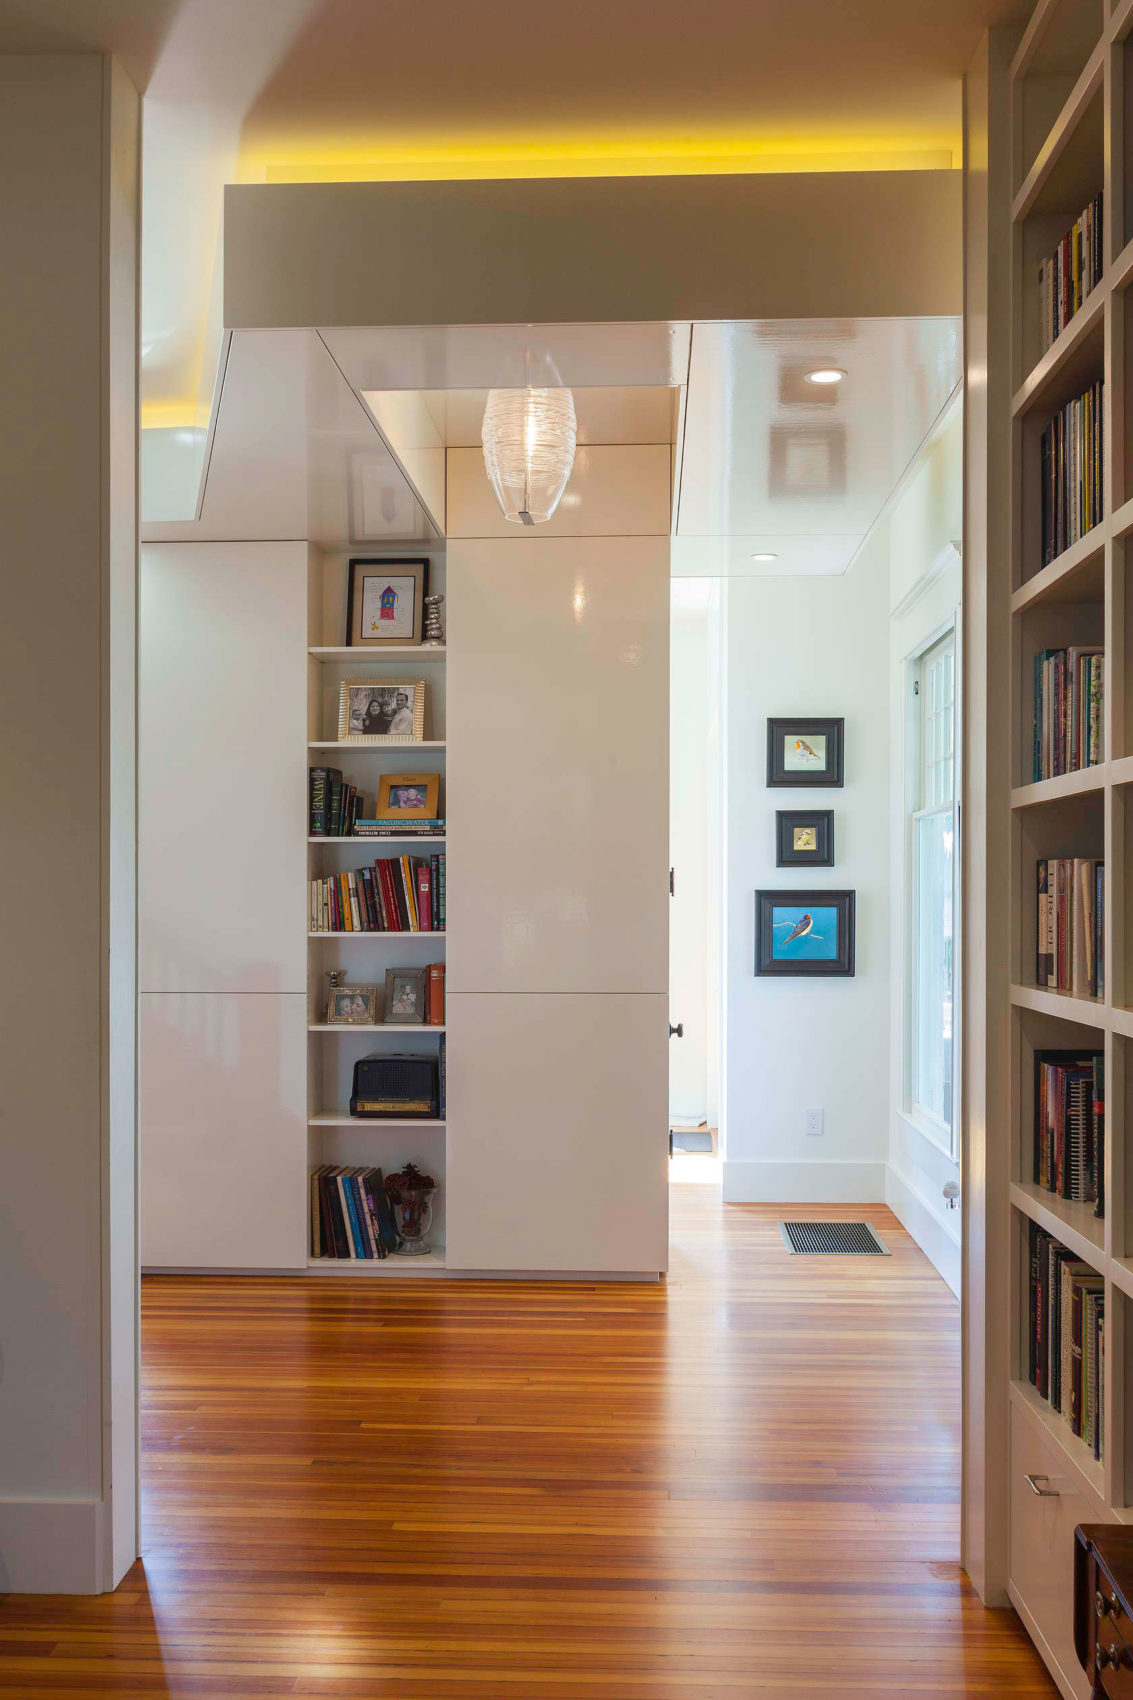 9th Street House by Tom Hurt Architecture (1)